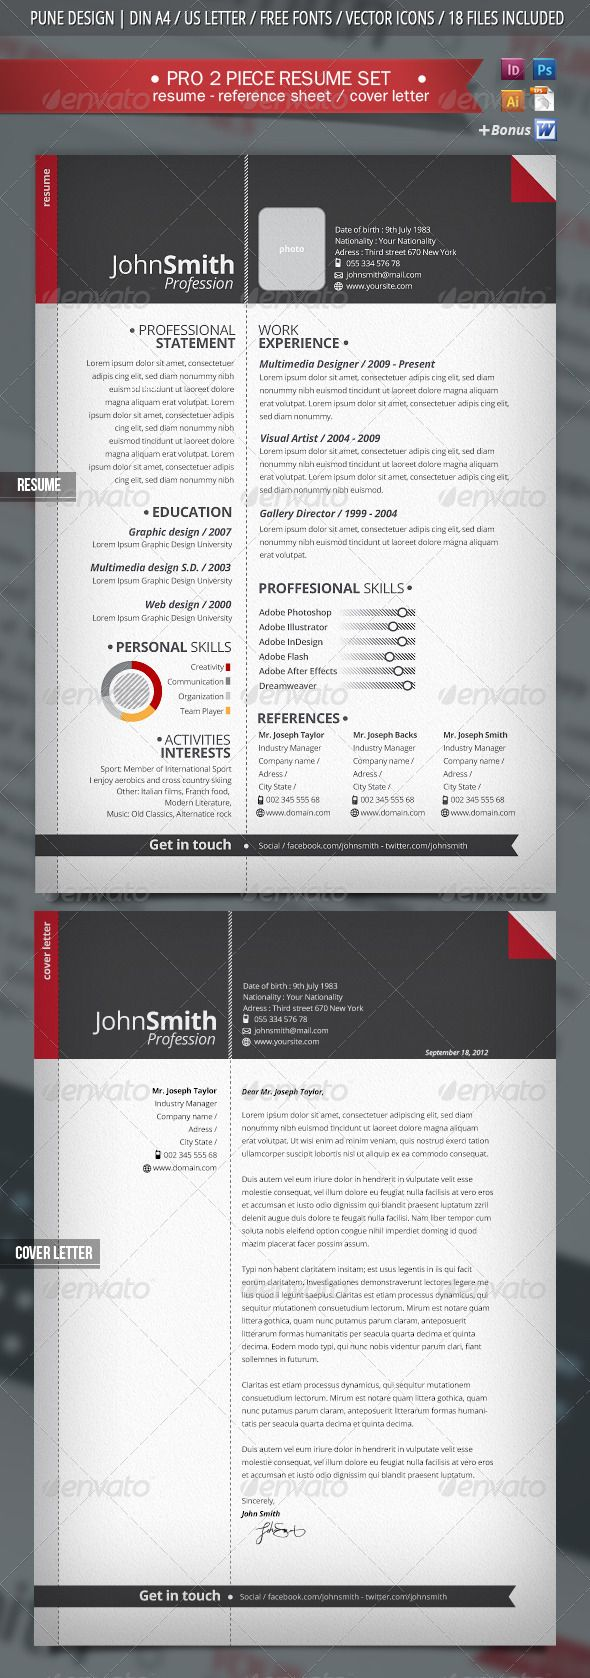 11 best cv images on Pinterest | Cv template, Resume templates and ...